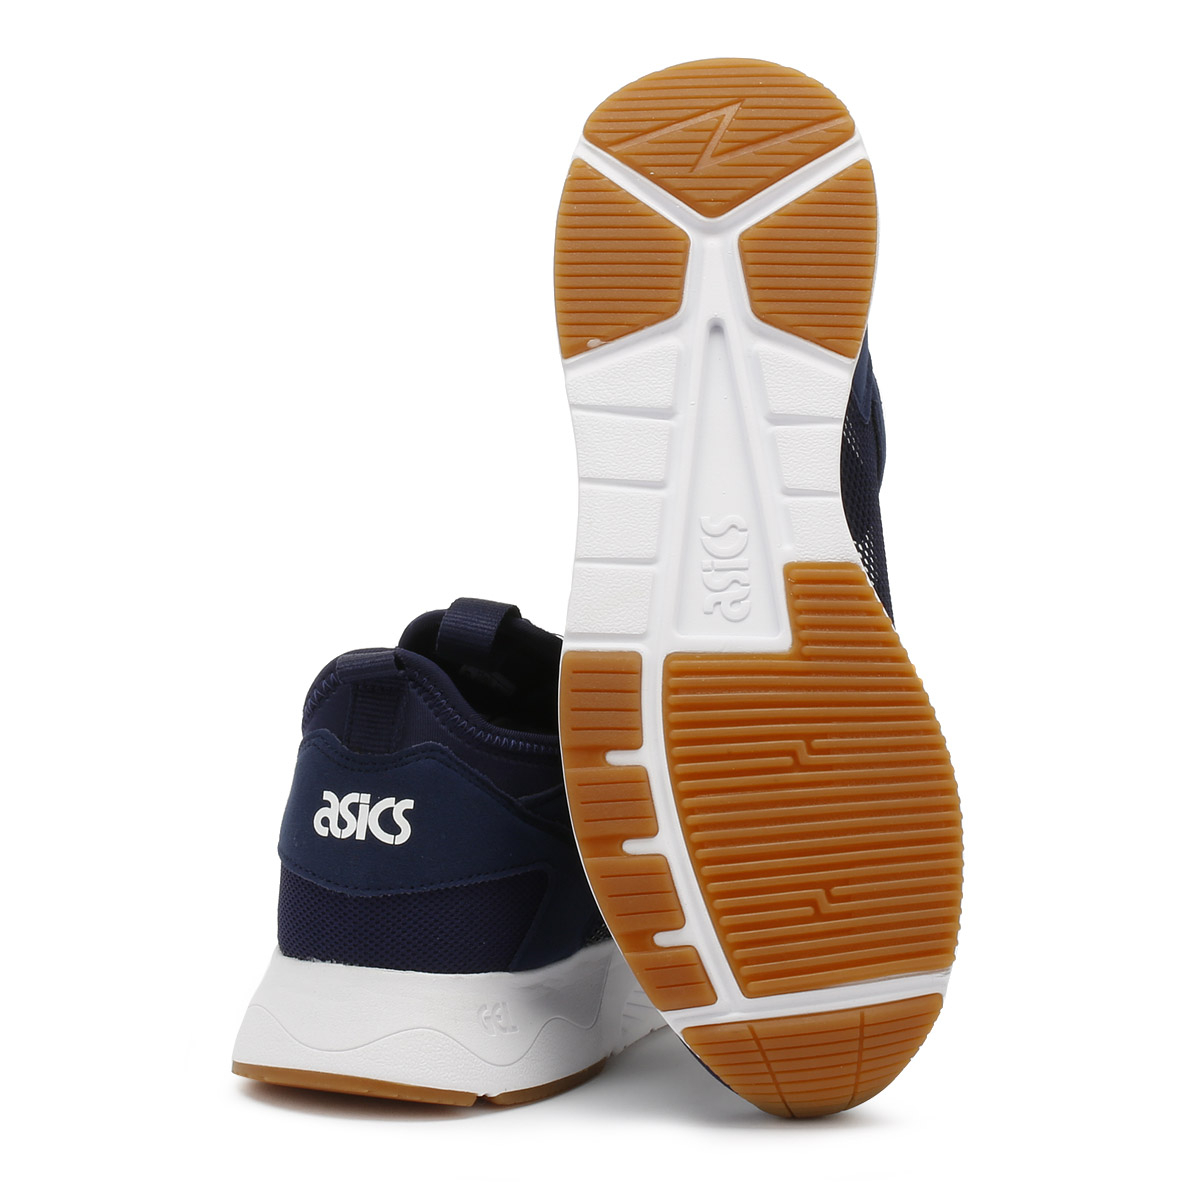 ASICS Mens Trainers Peacoat Navy Gel-Lyte V RB Lace Up Sport Casual Shoes